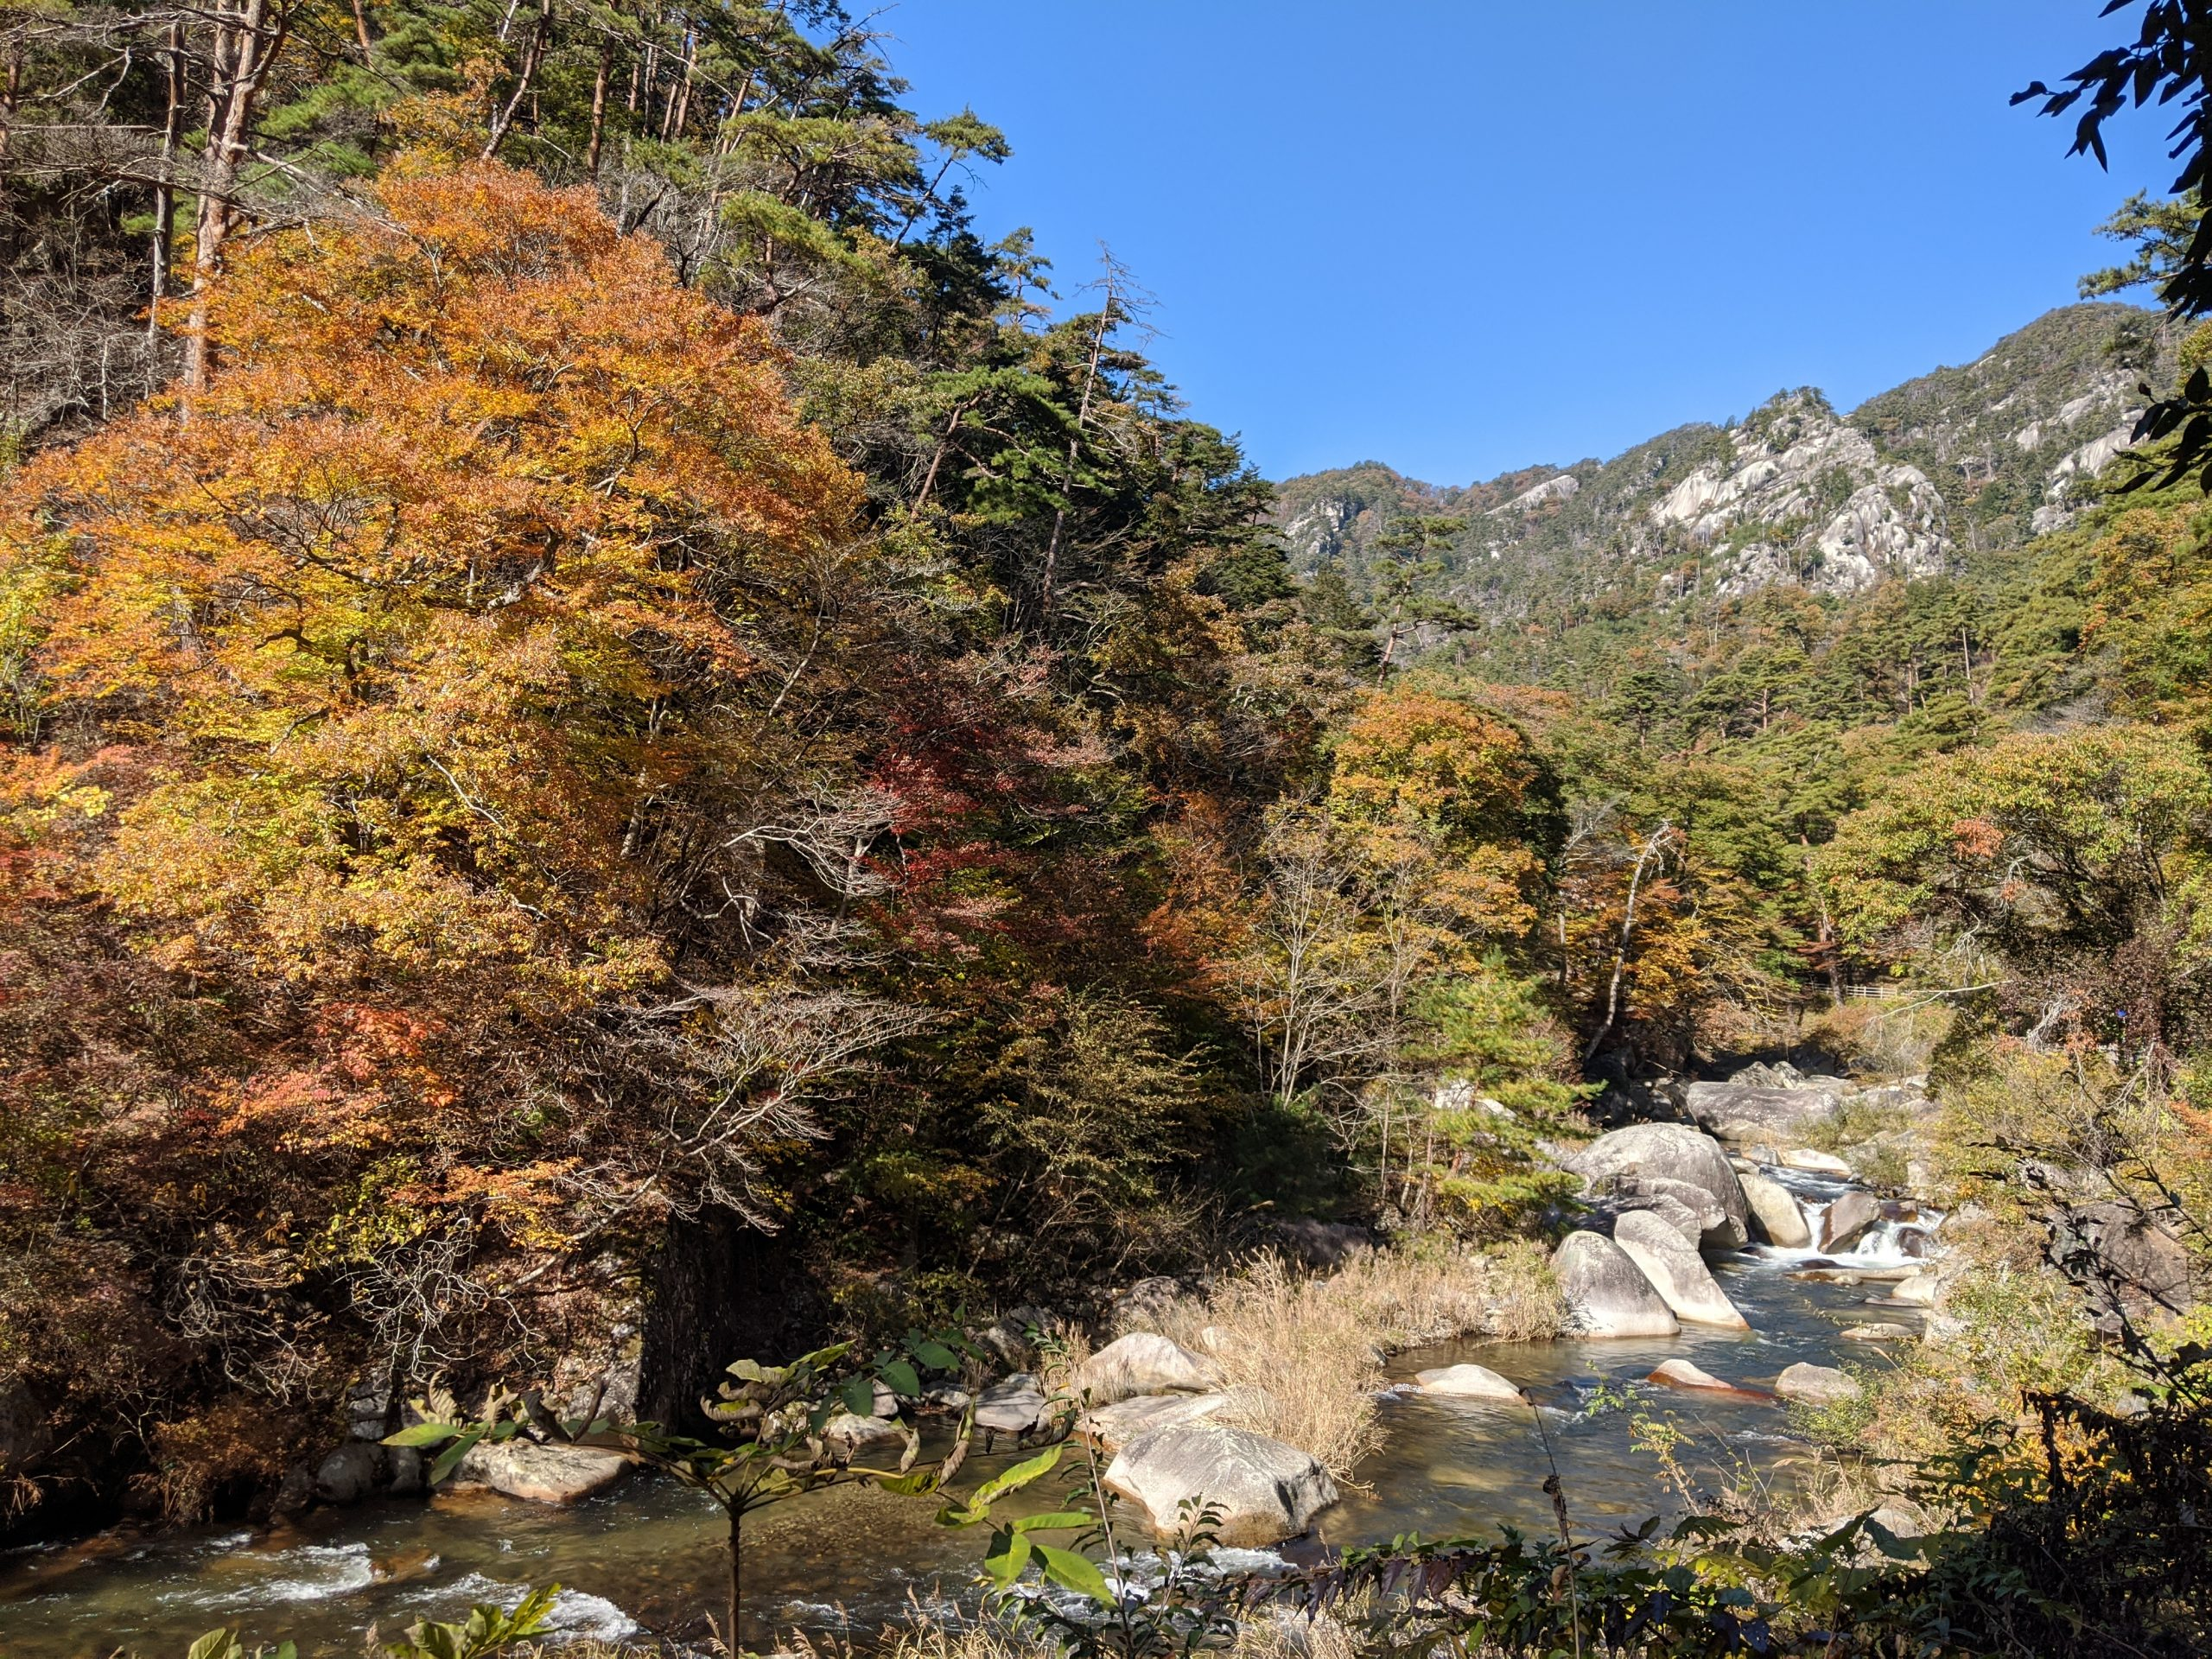 Exploring Japan: Day trip to Shosenkyo Gorge (御嶽昇仙峡) in Kofu, Yamanashi